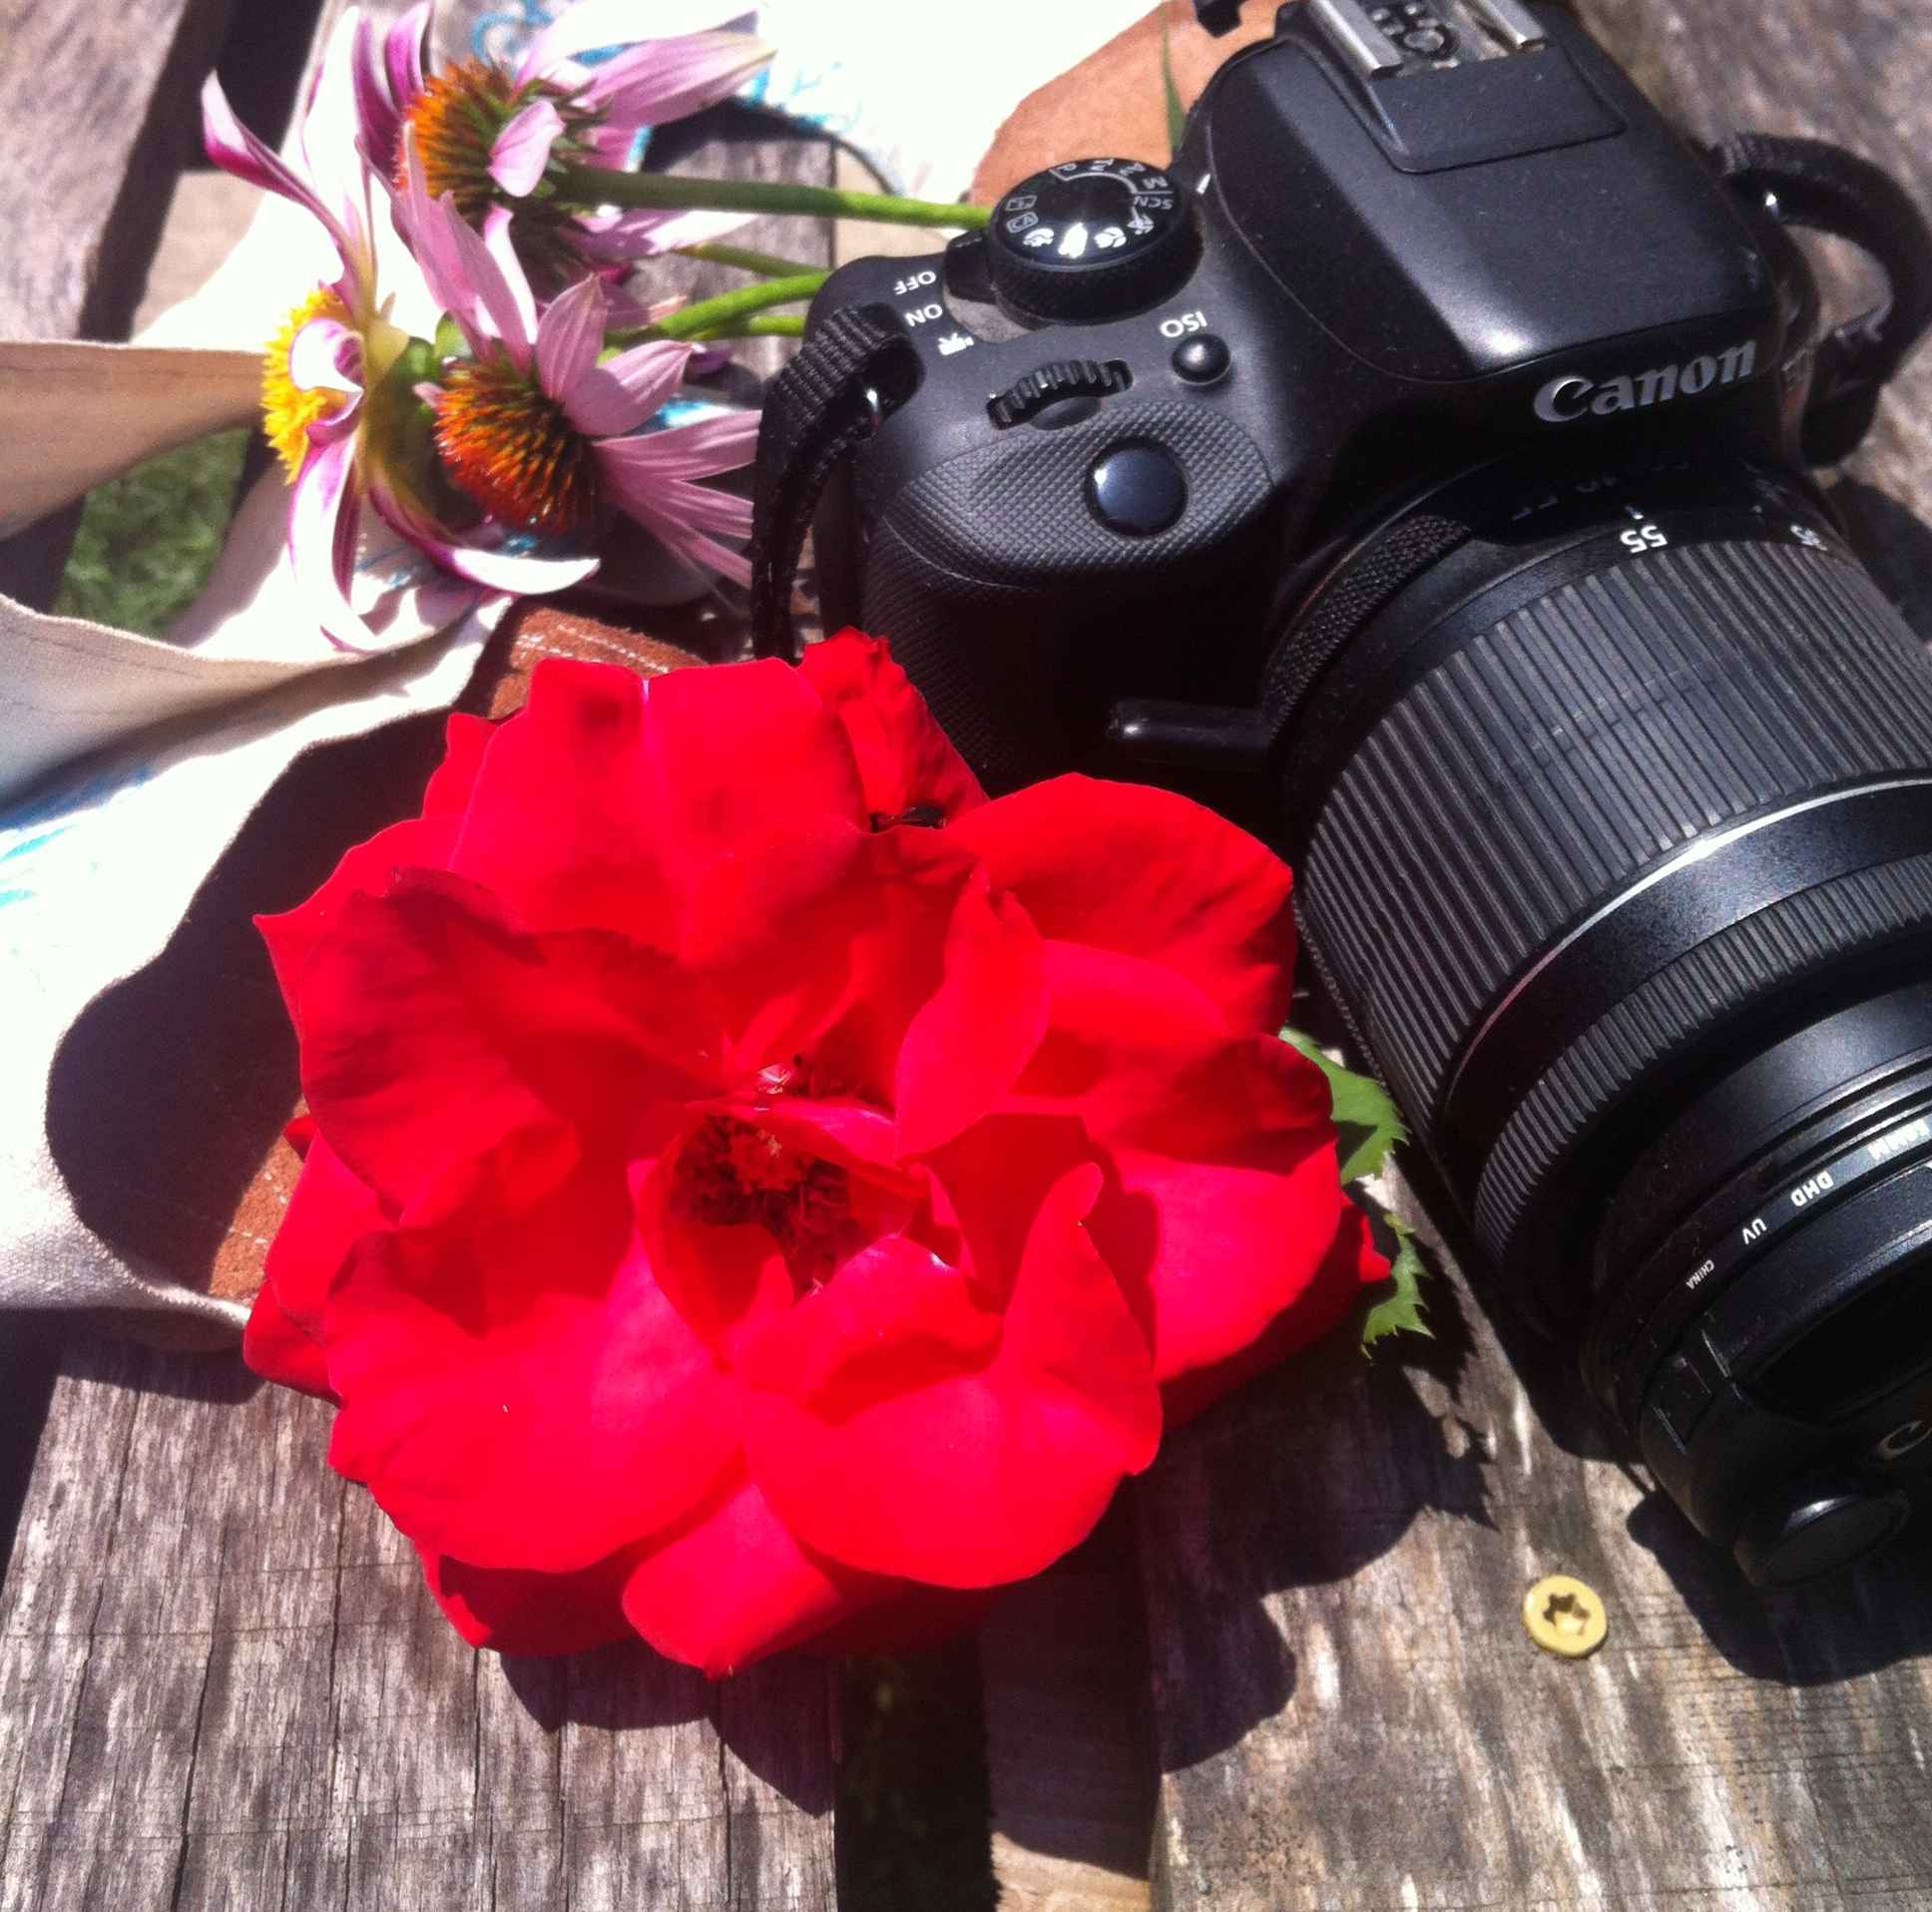 Zoom In – Finding Beauty and Joy in Life